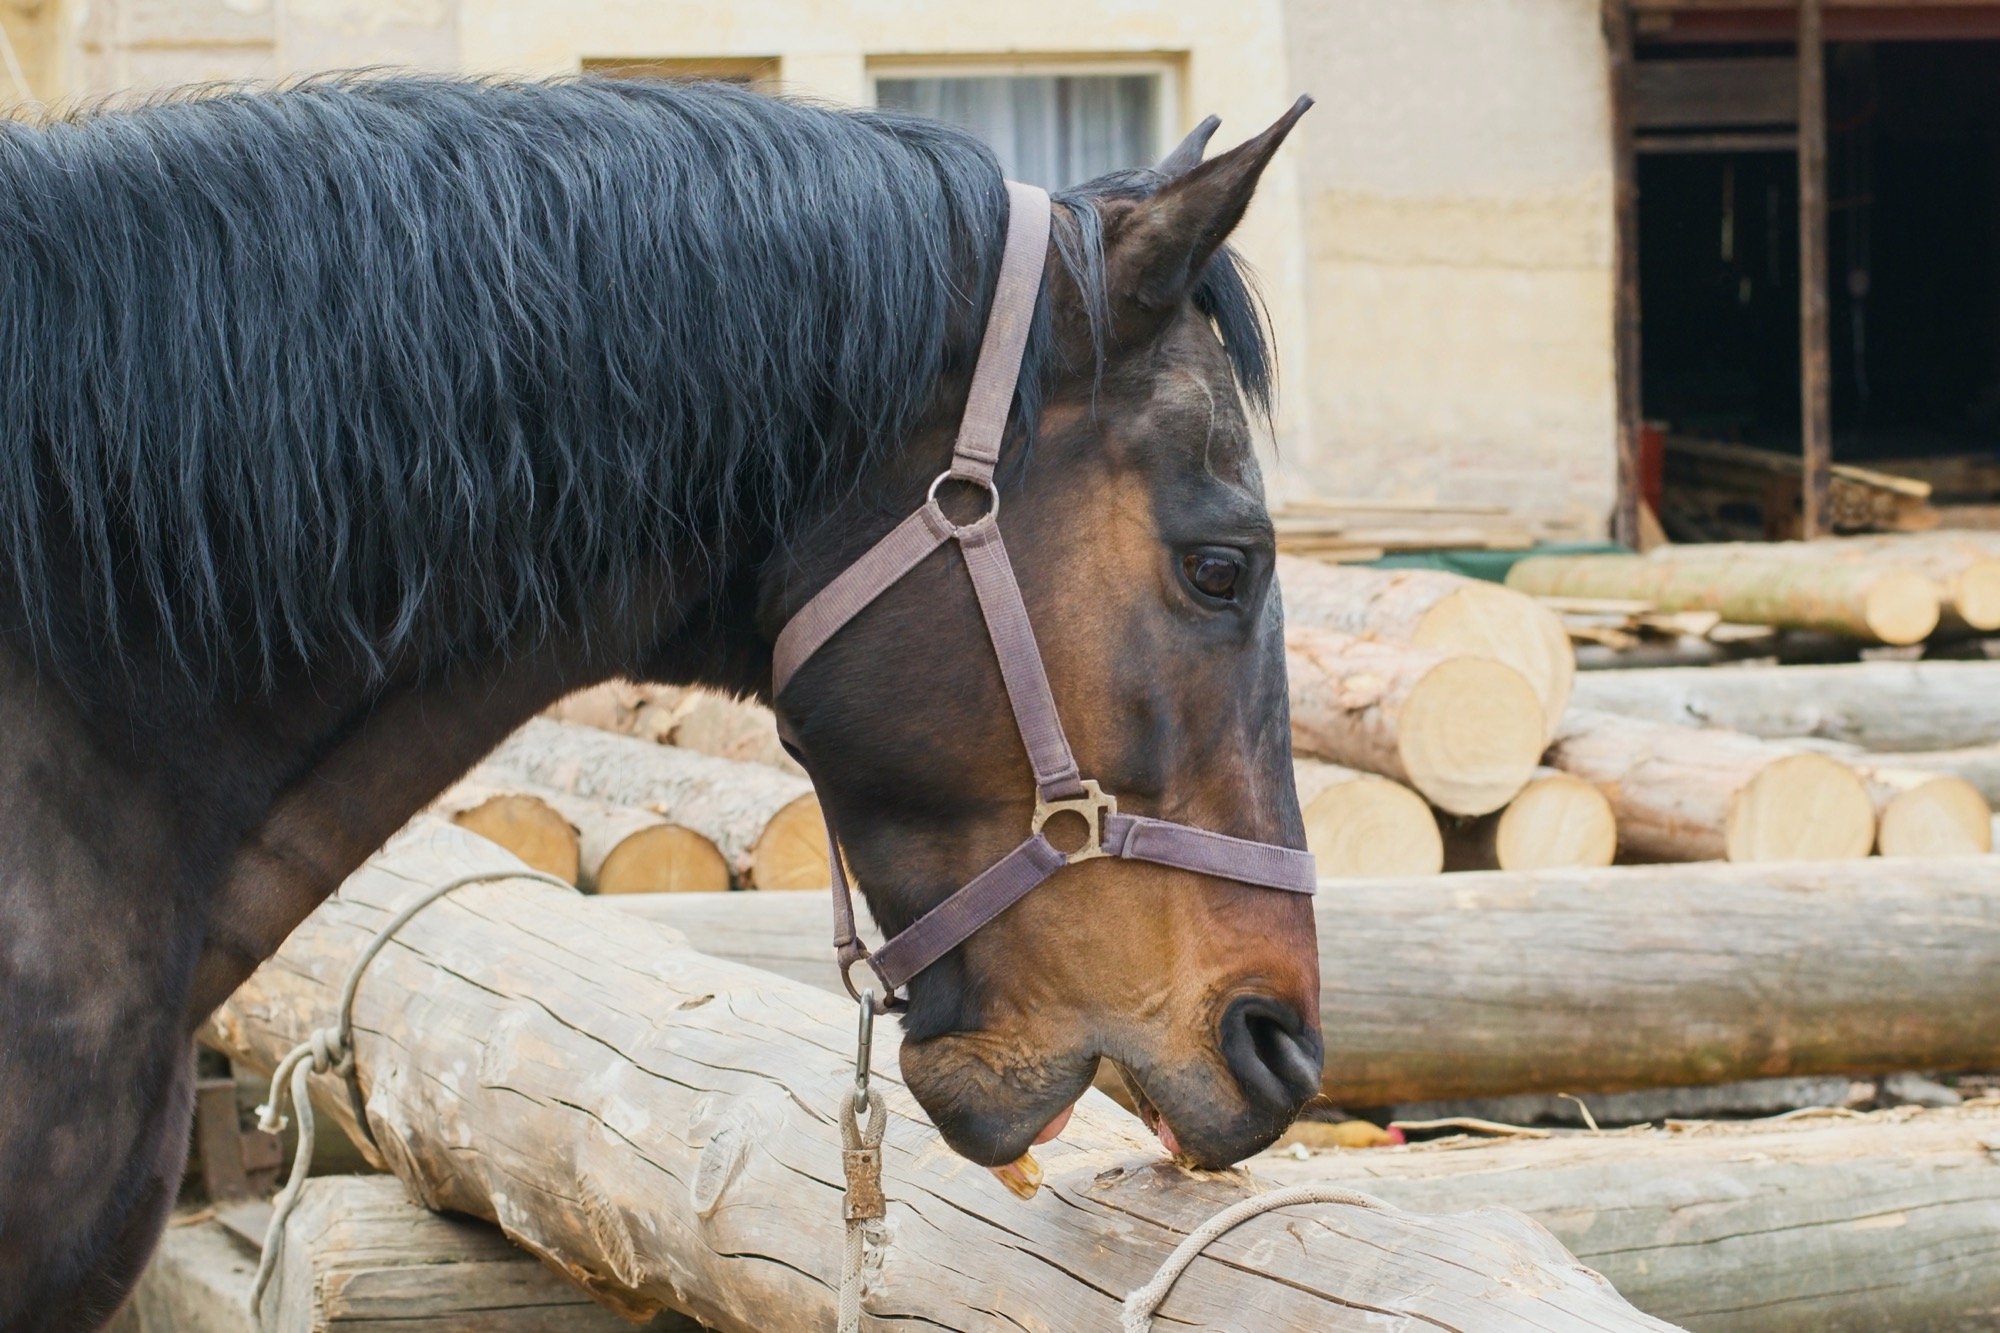 A horse exhibiting crib biting stereotypical behavior